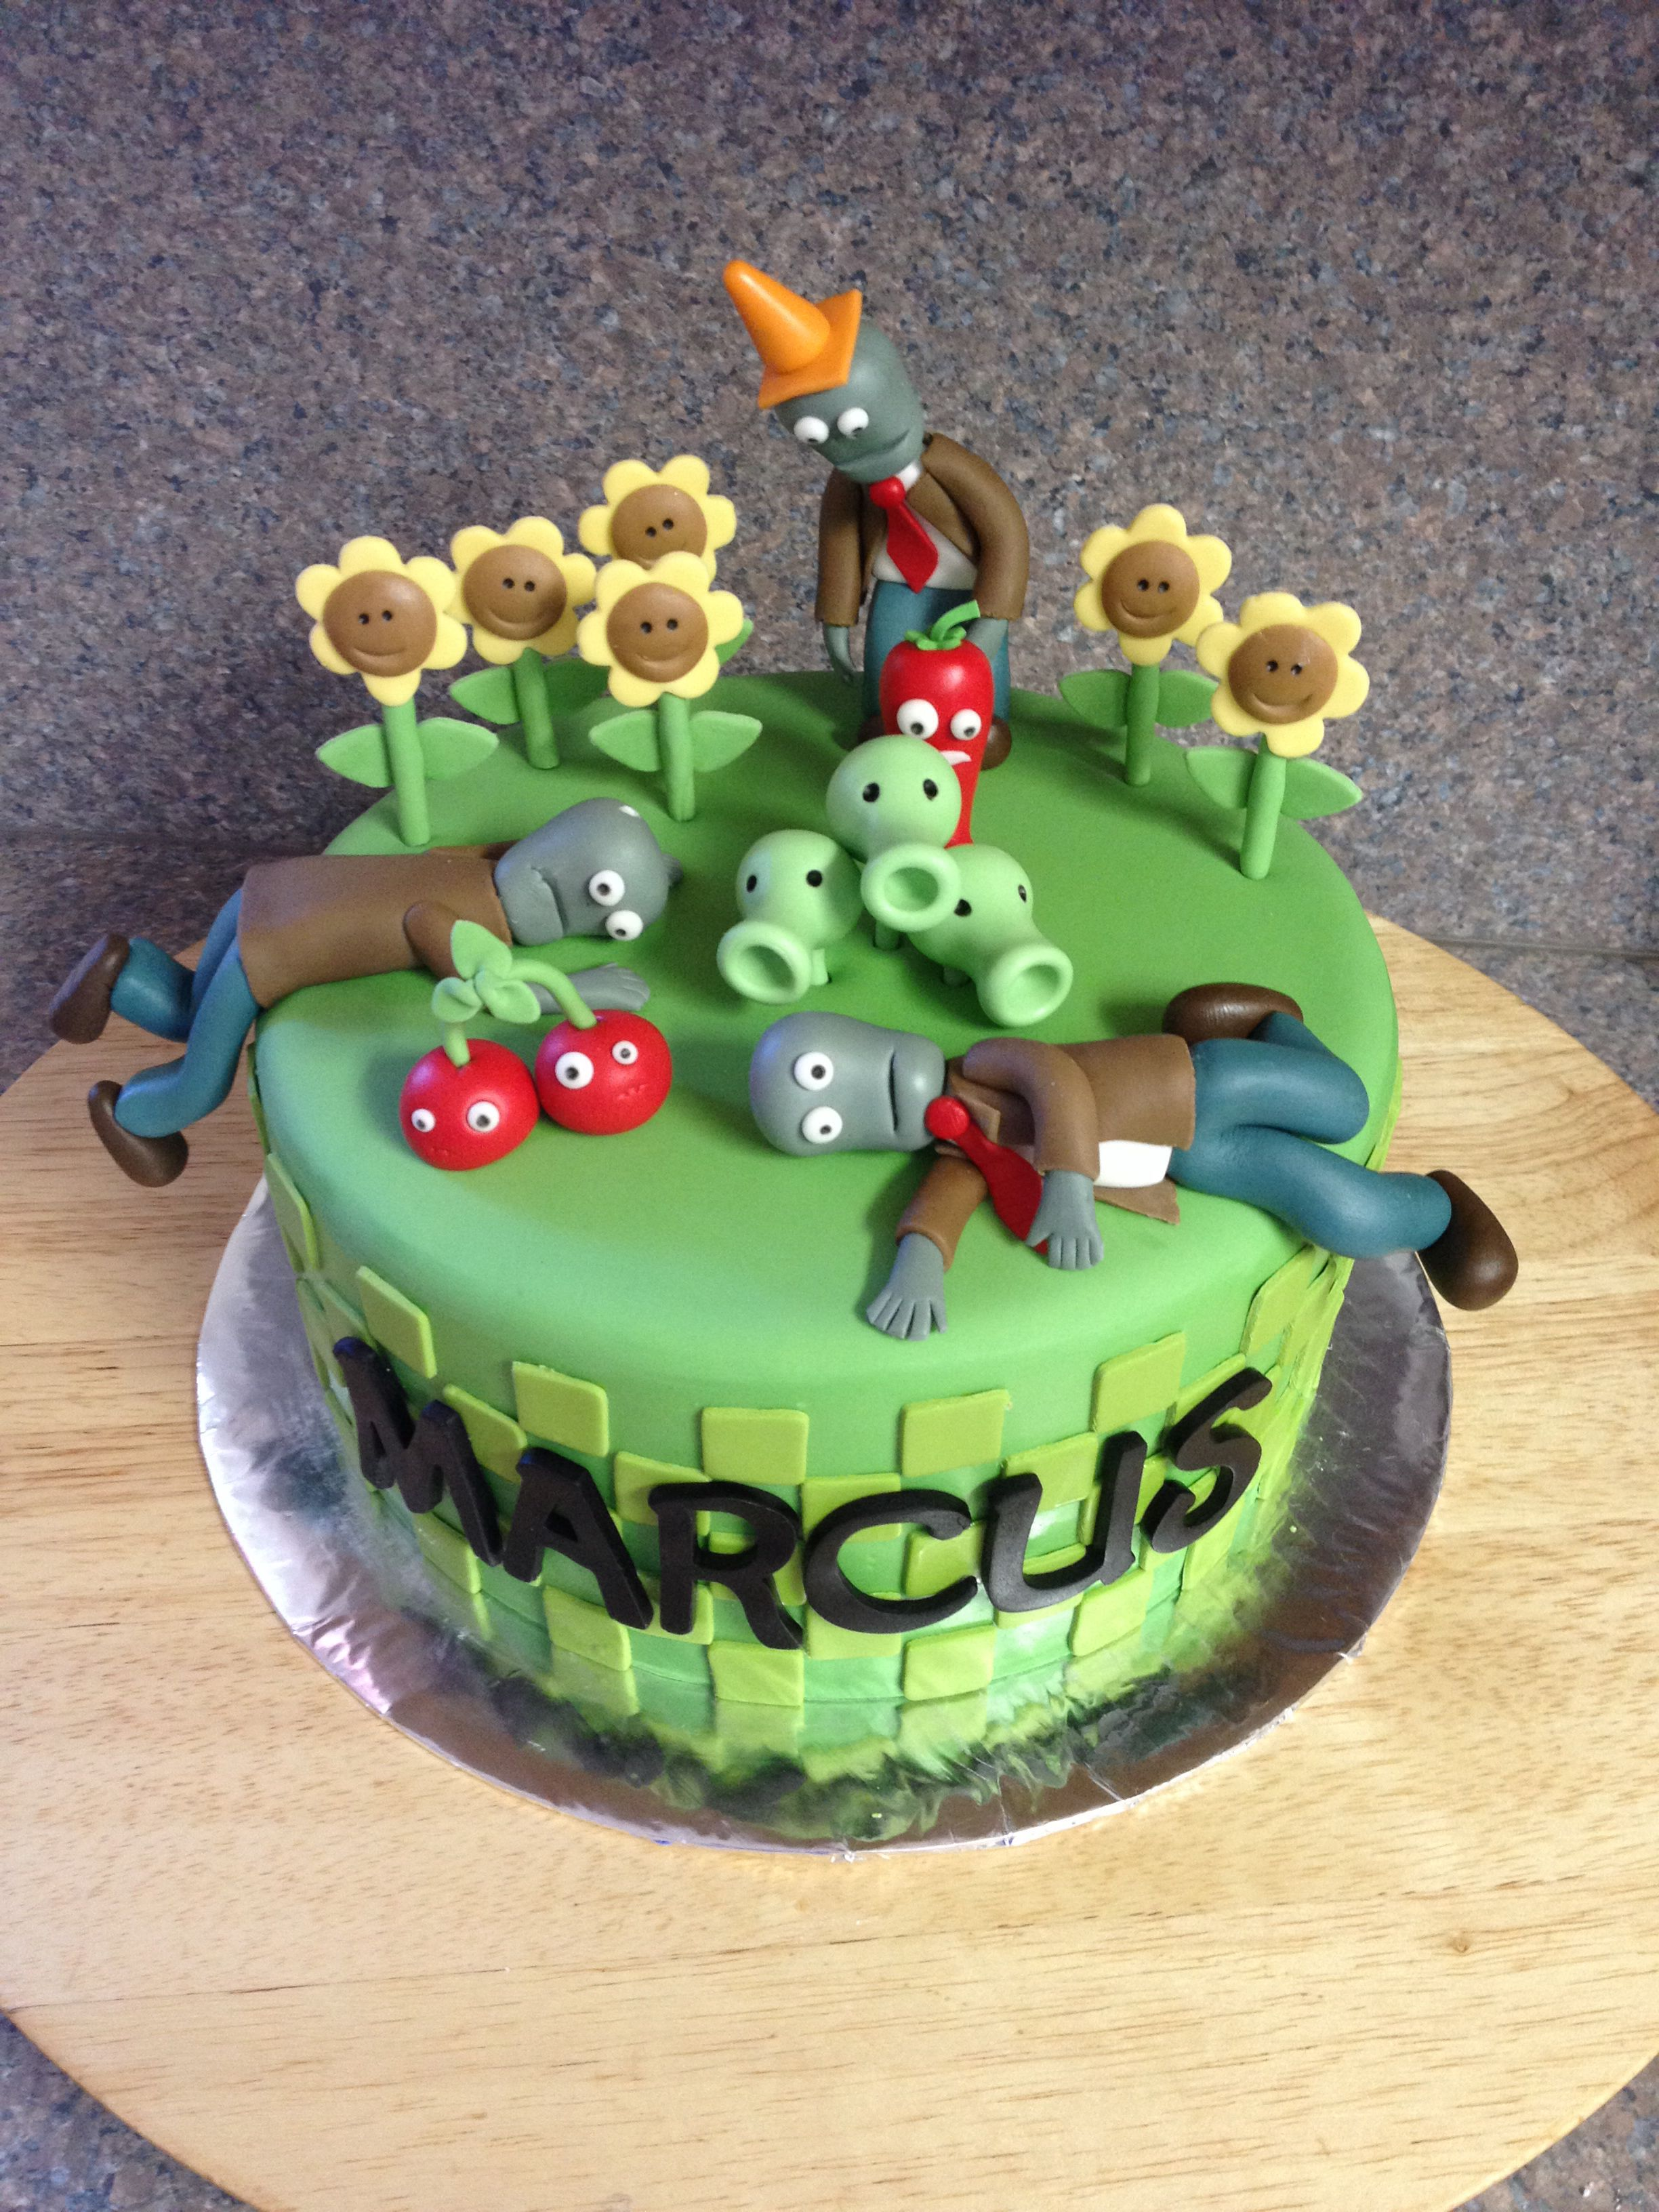 Surprising Plants Vs Zombies Birthday Cake Ideas The Cake Boutique Funny Birthday Cards Online Overcheapnameinfo